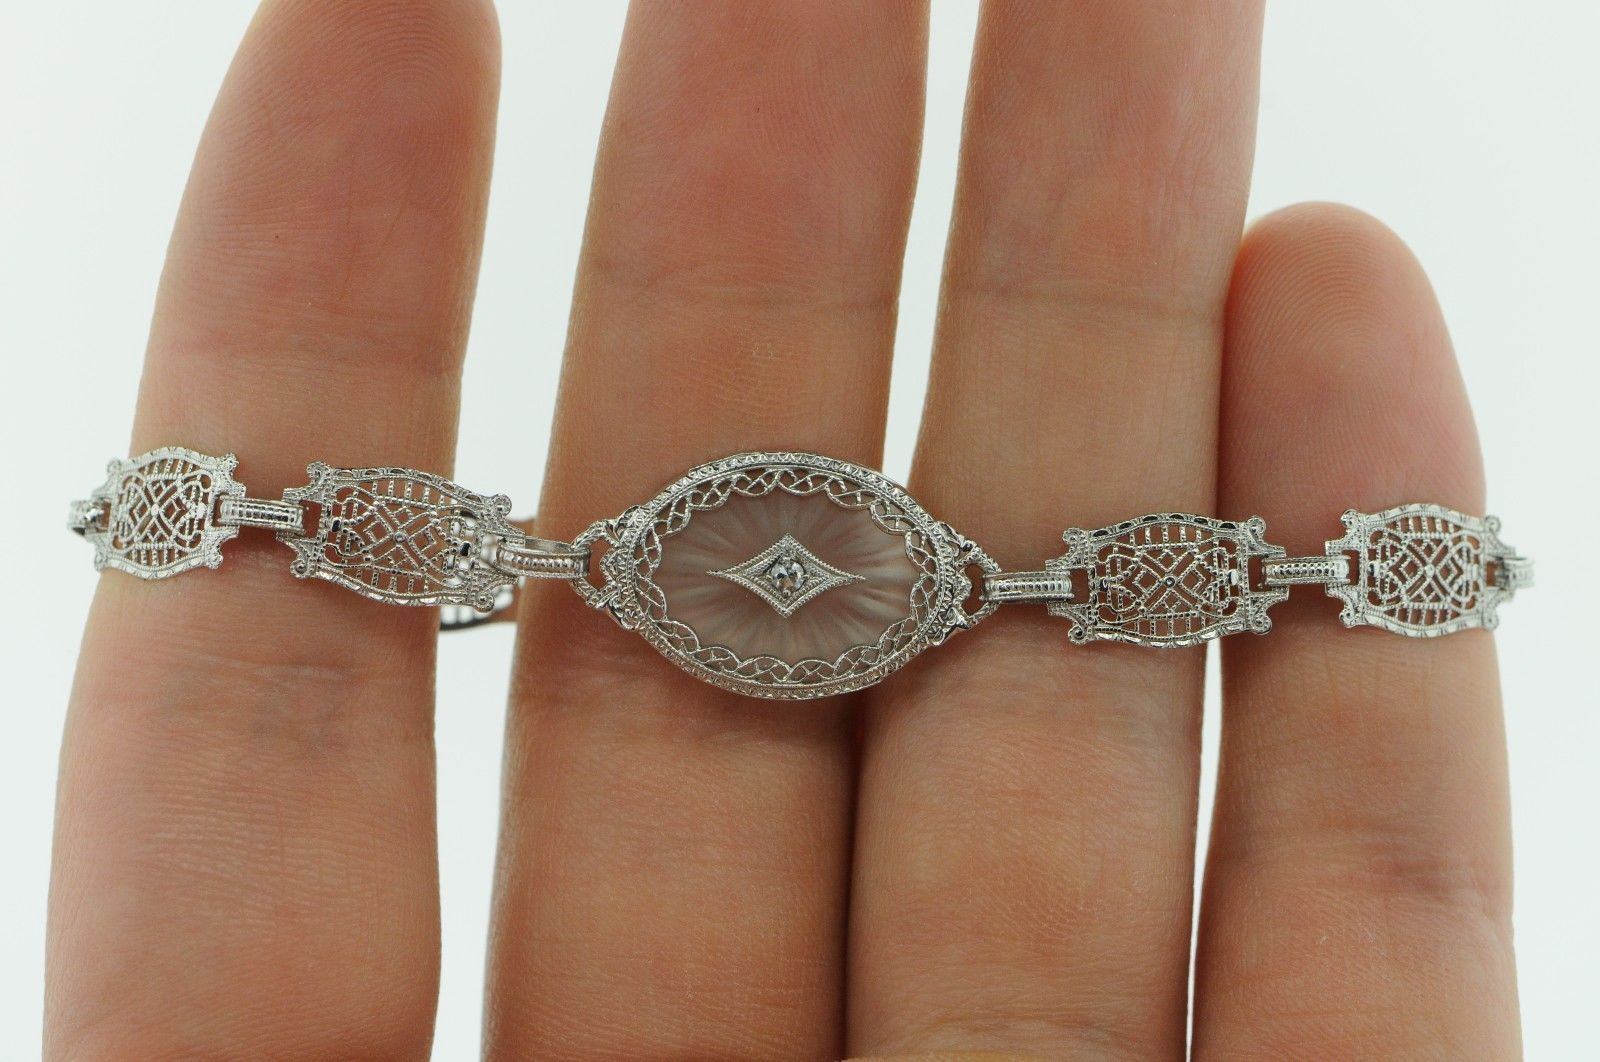 "Art Deco (ca. 1930) 10K White Gold Diamond & Etched Glass Bracelet (6 3/4"") image 2"